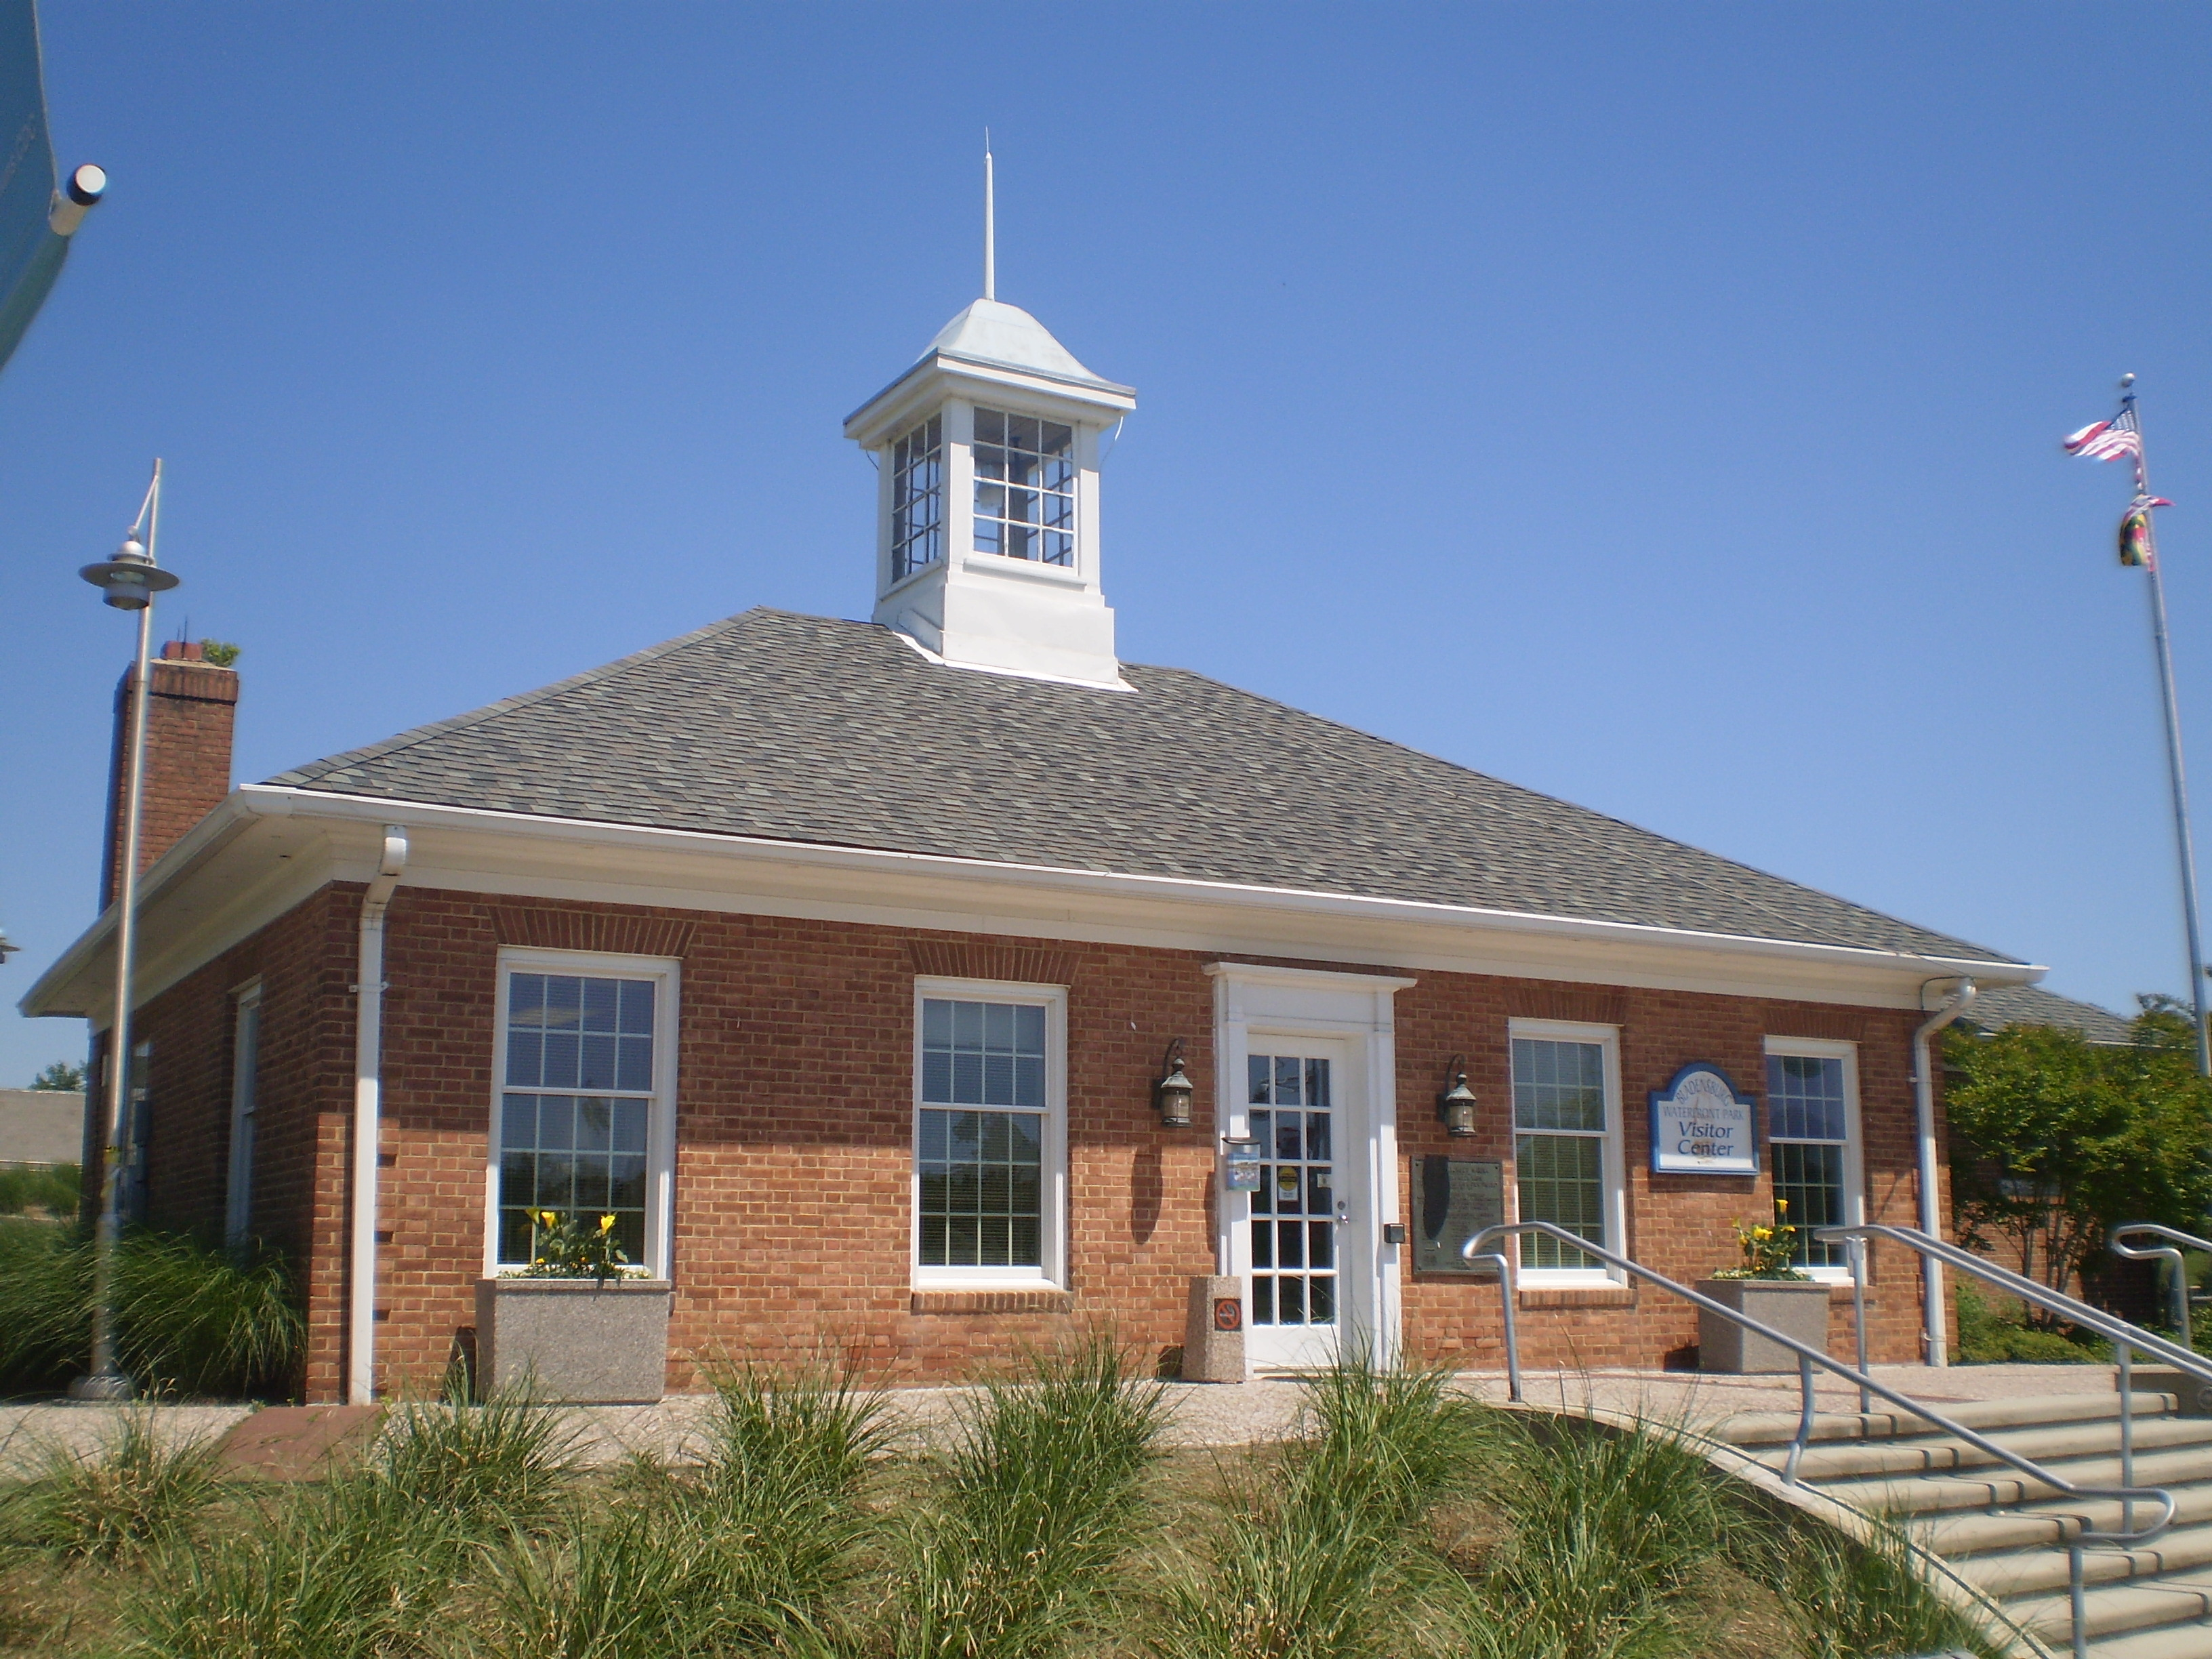 The Battle of Bladensburg Visitor Center